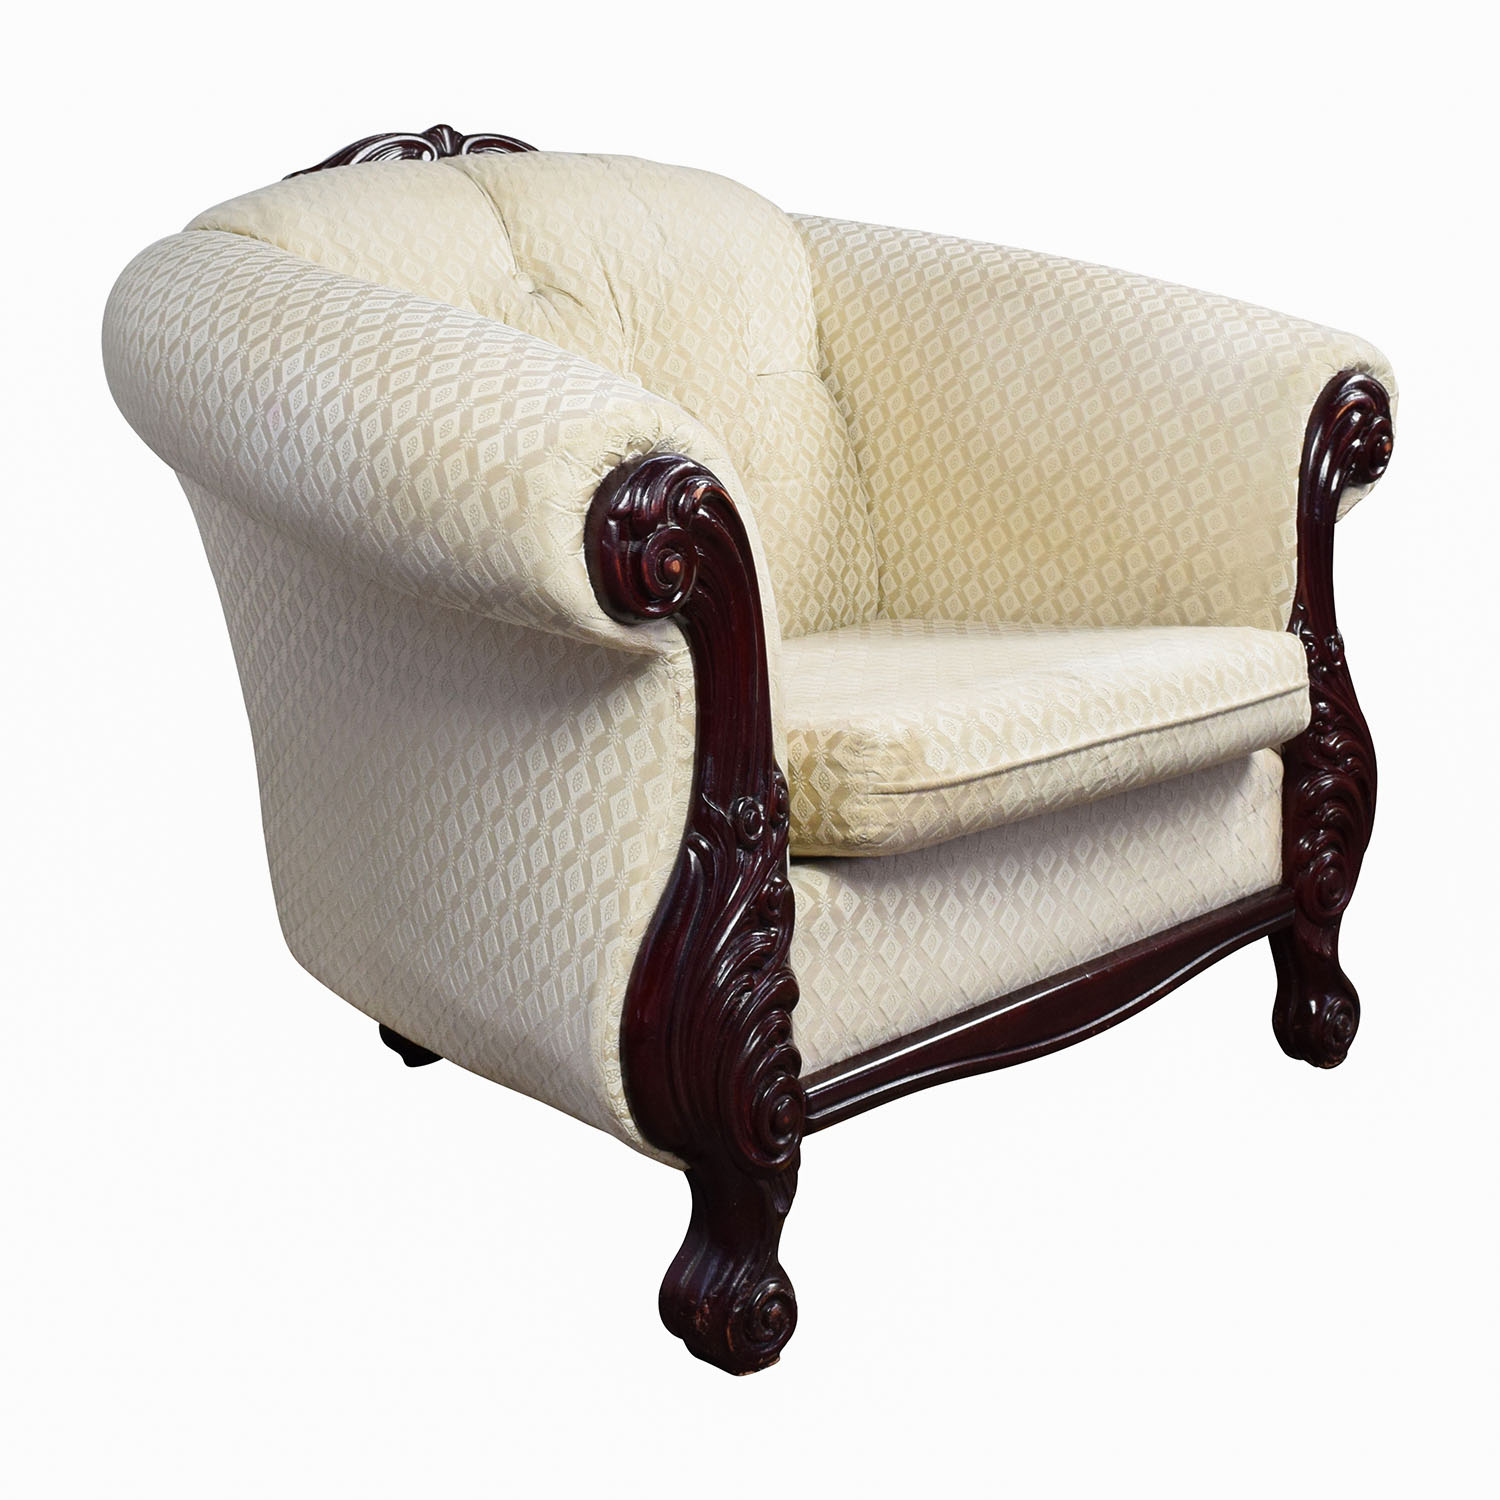 56% OFF - Mahogany Wood Beige Upholstered ArmChair / Chairs